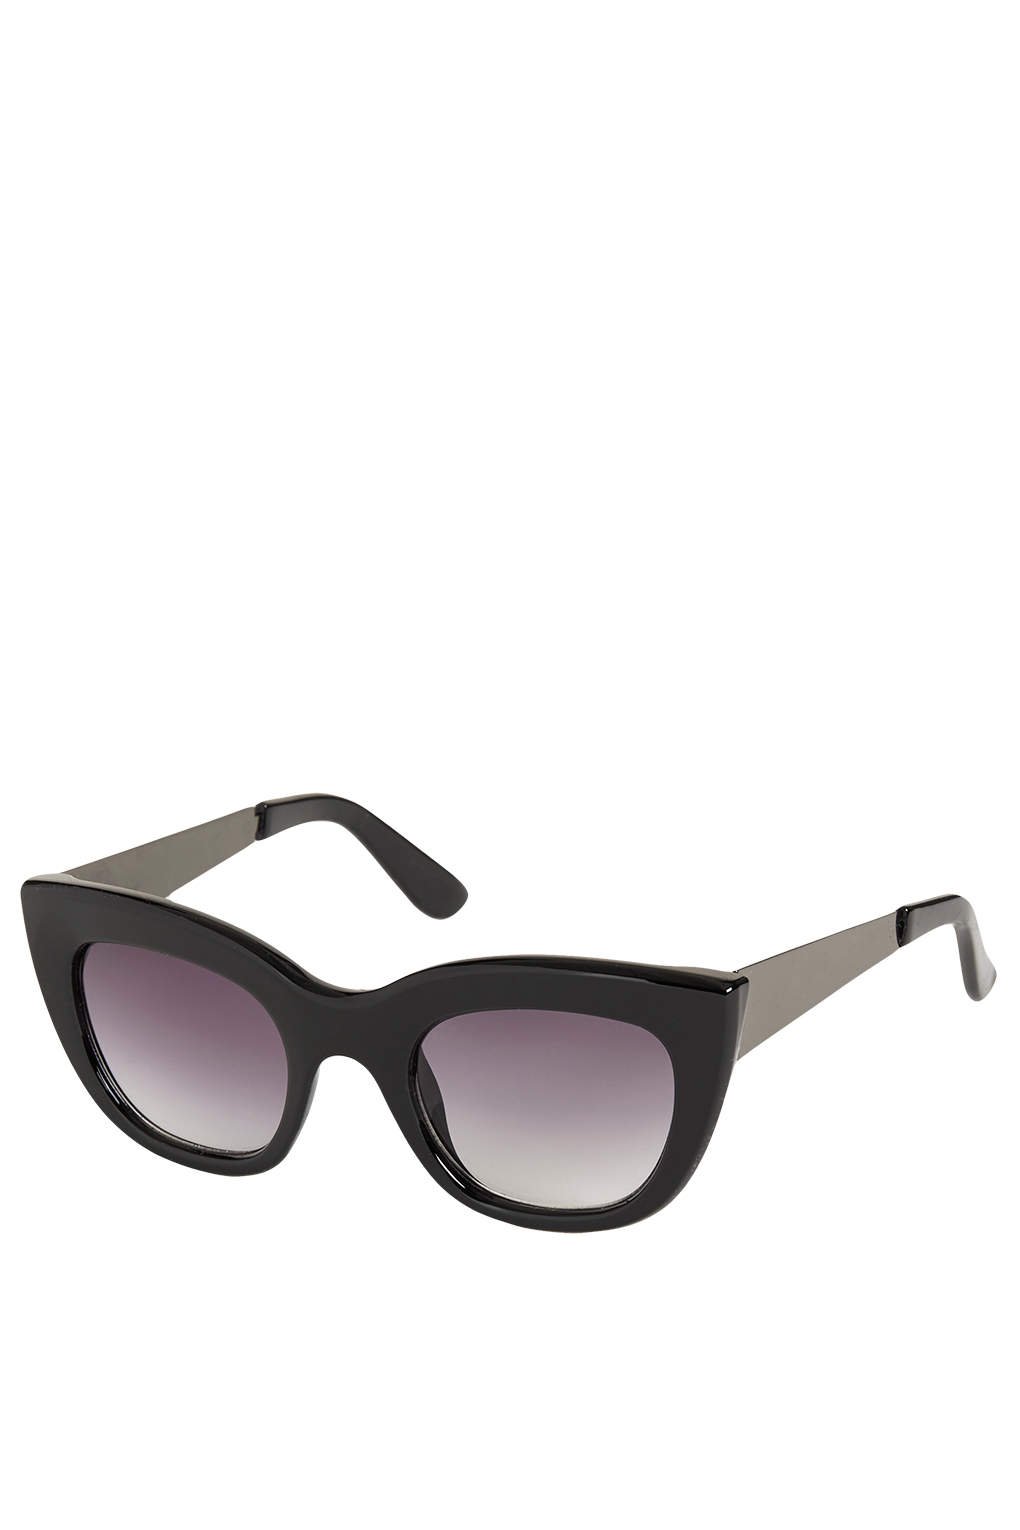 Sasha Metal Arm Cateye Sunglasses - Cats Eyes Sunglasses - Sunglasses - Bags & Accessories